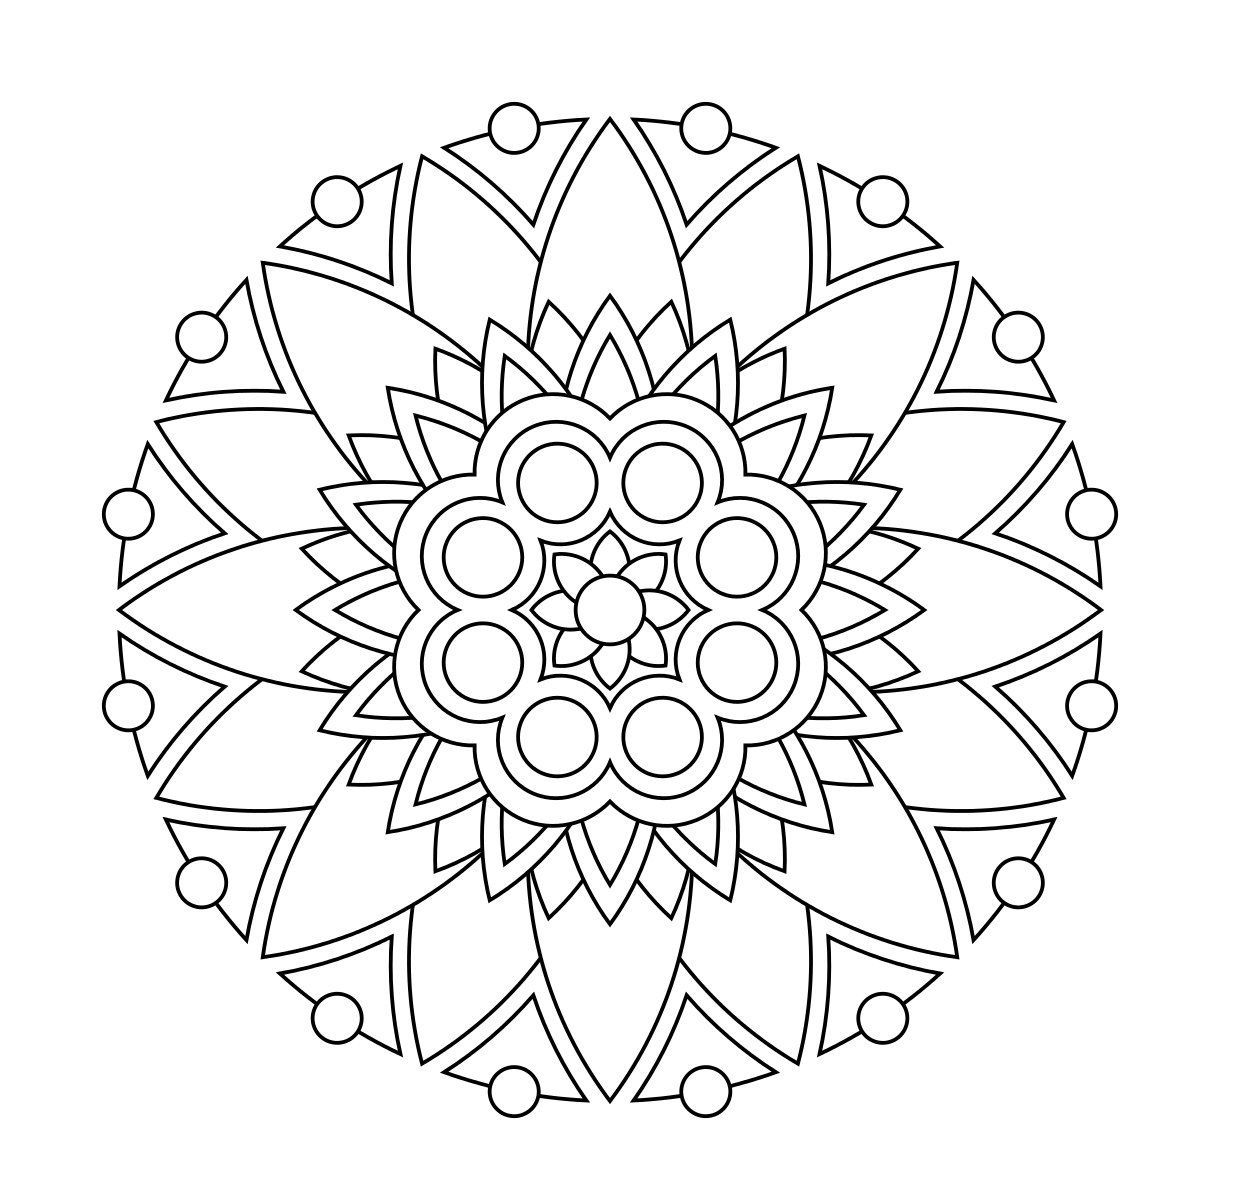 29 Printable Mandala Abstract Colouring Pages For Meditation Stress Relief Mandala Coloring Mandala Coloring Pages Abstract Coloring Pages